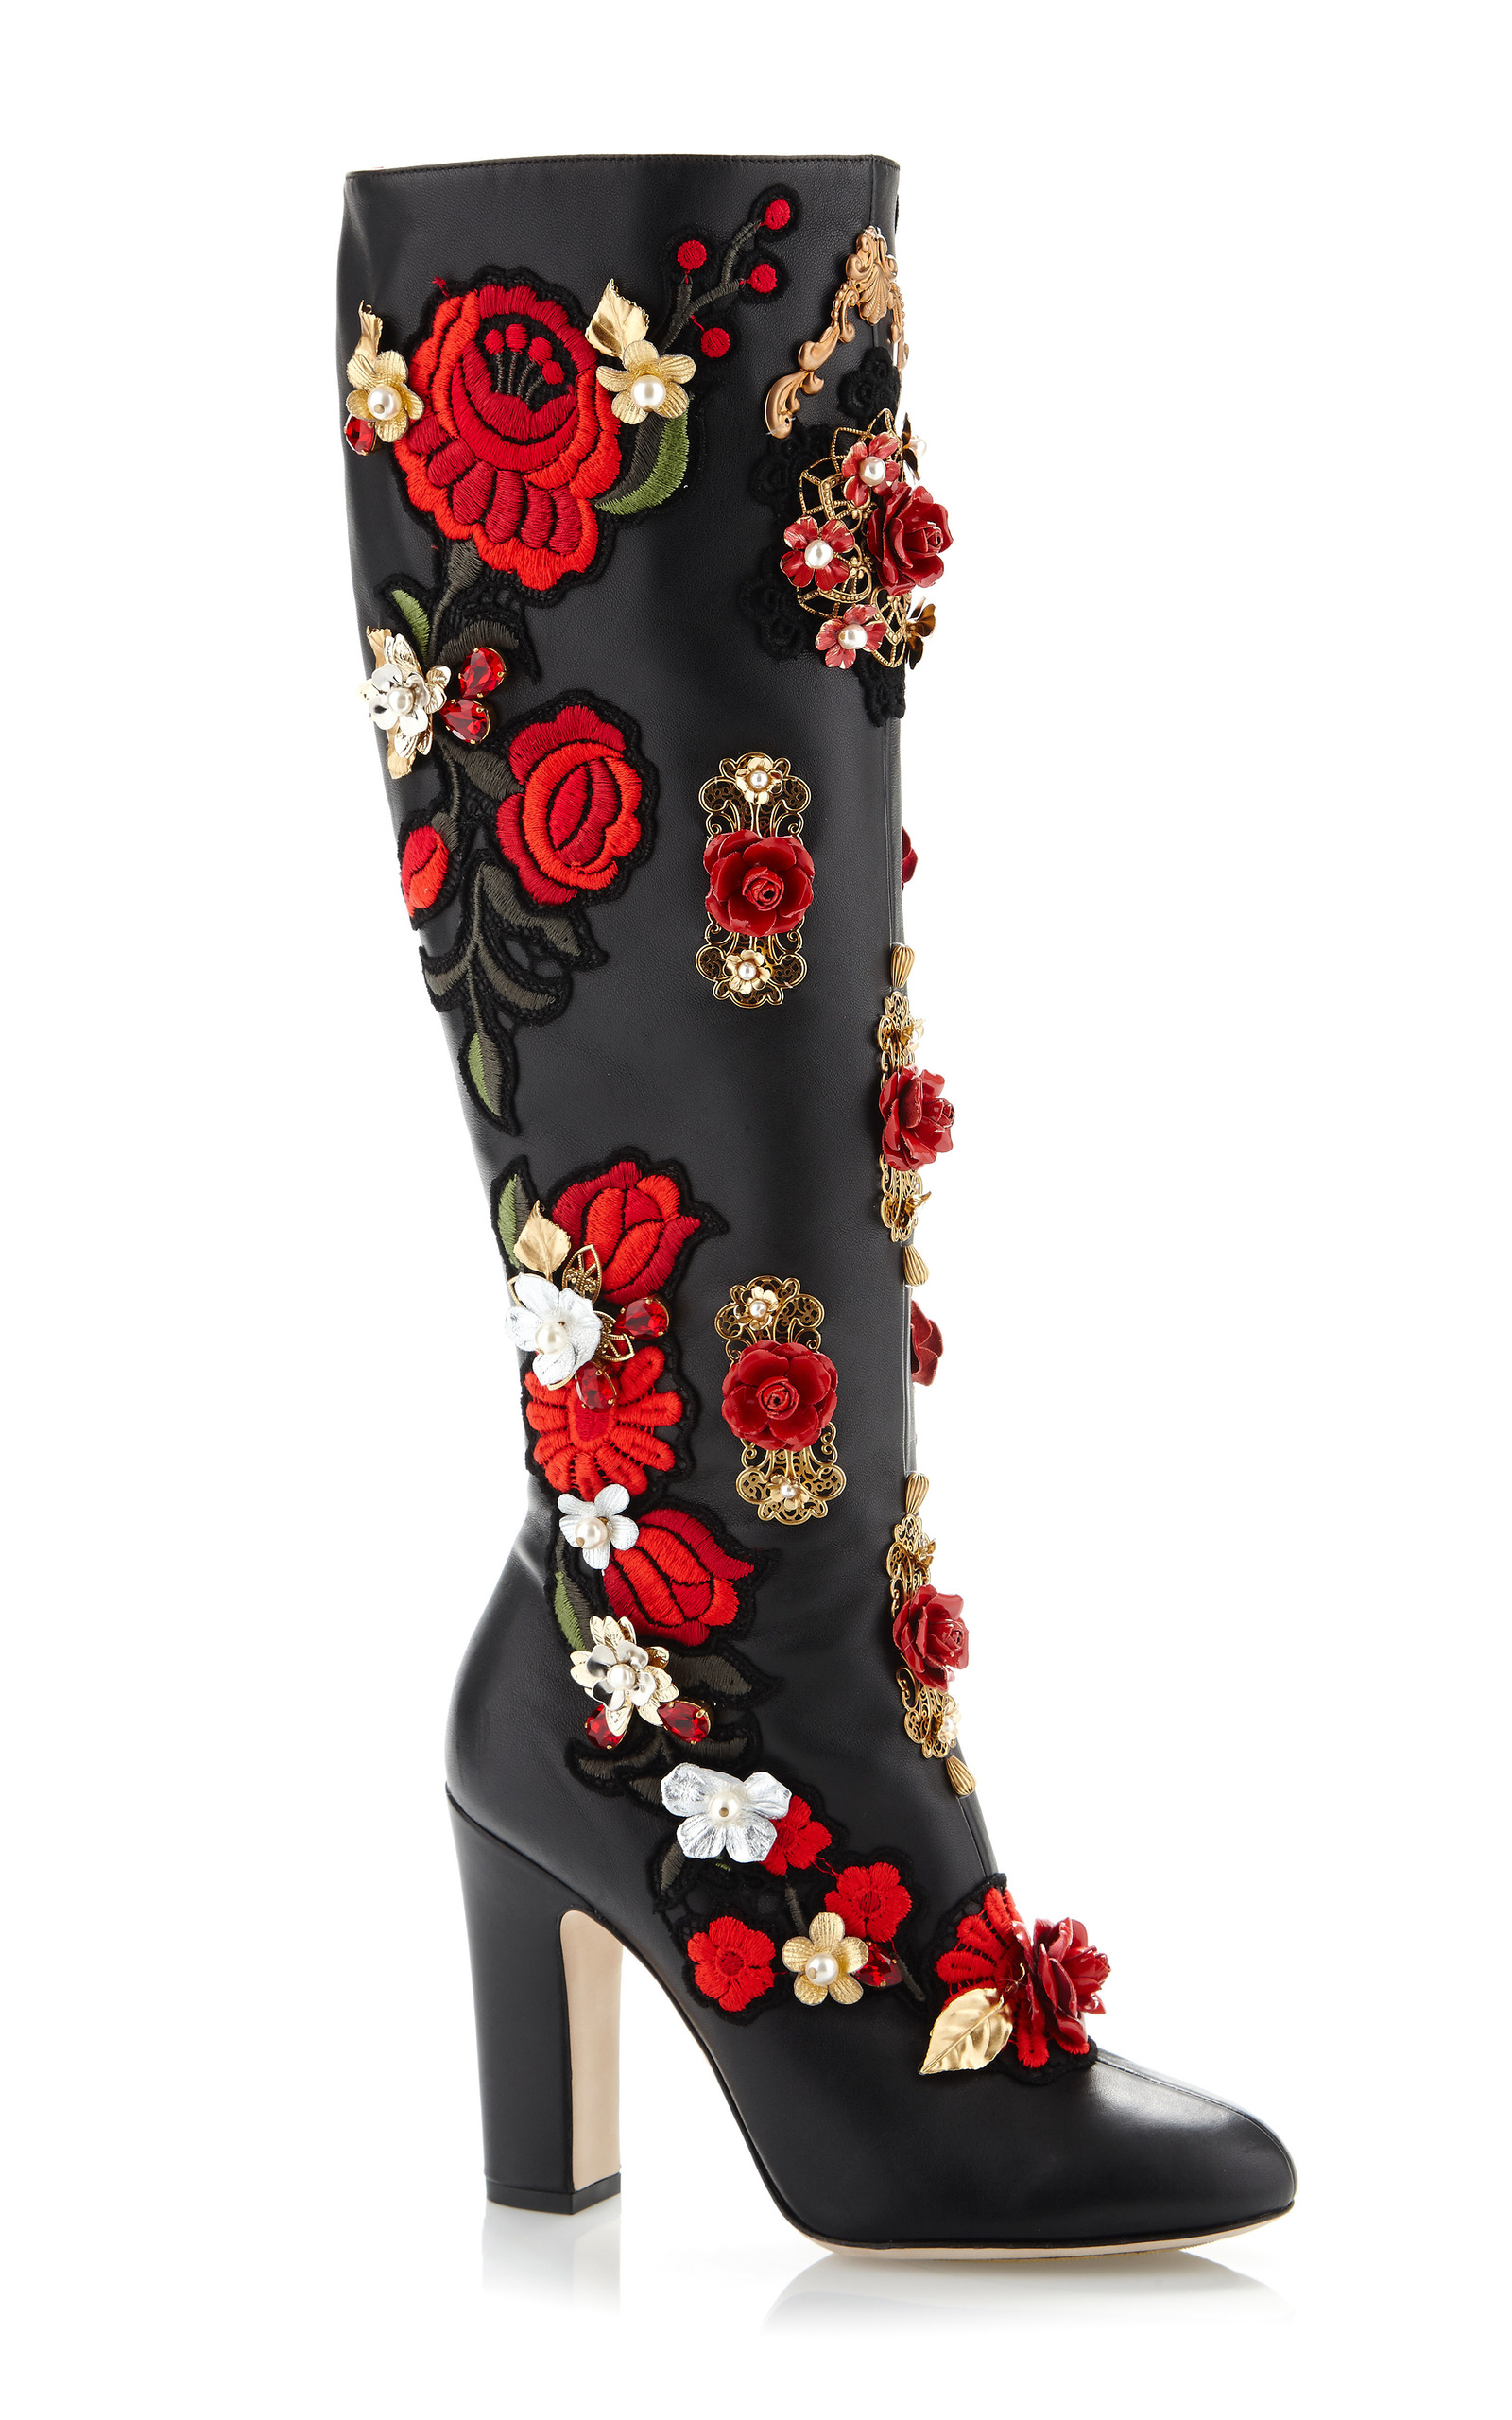 Rose embroidered high nappa boot by dolce moda operandi